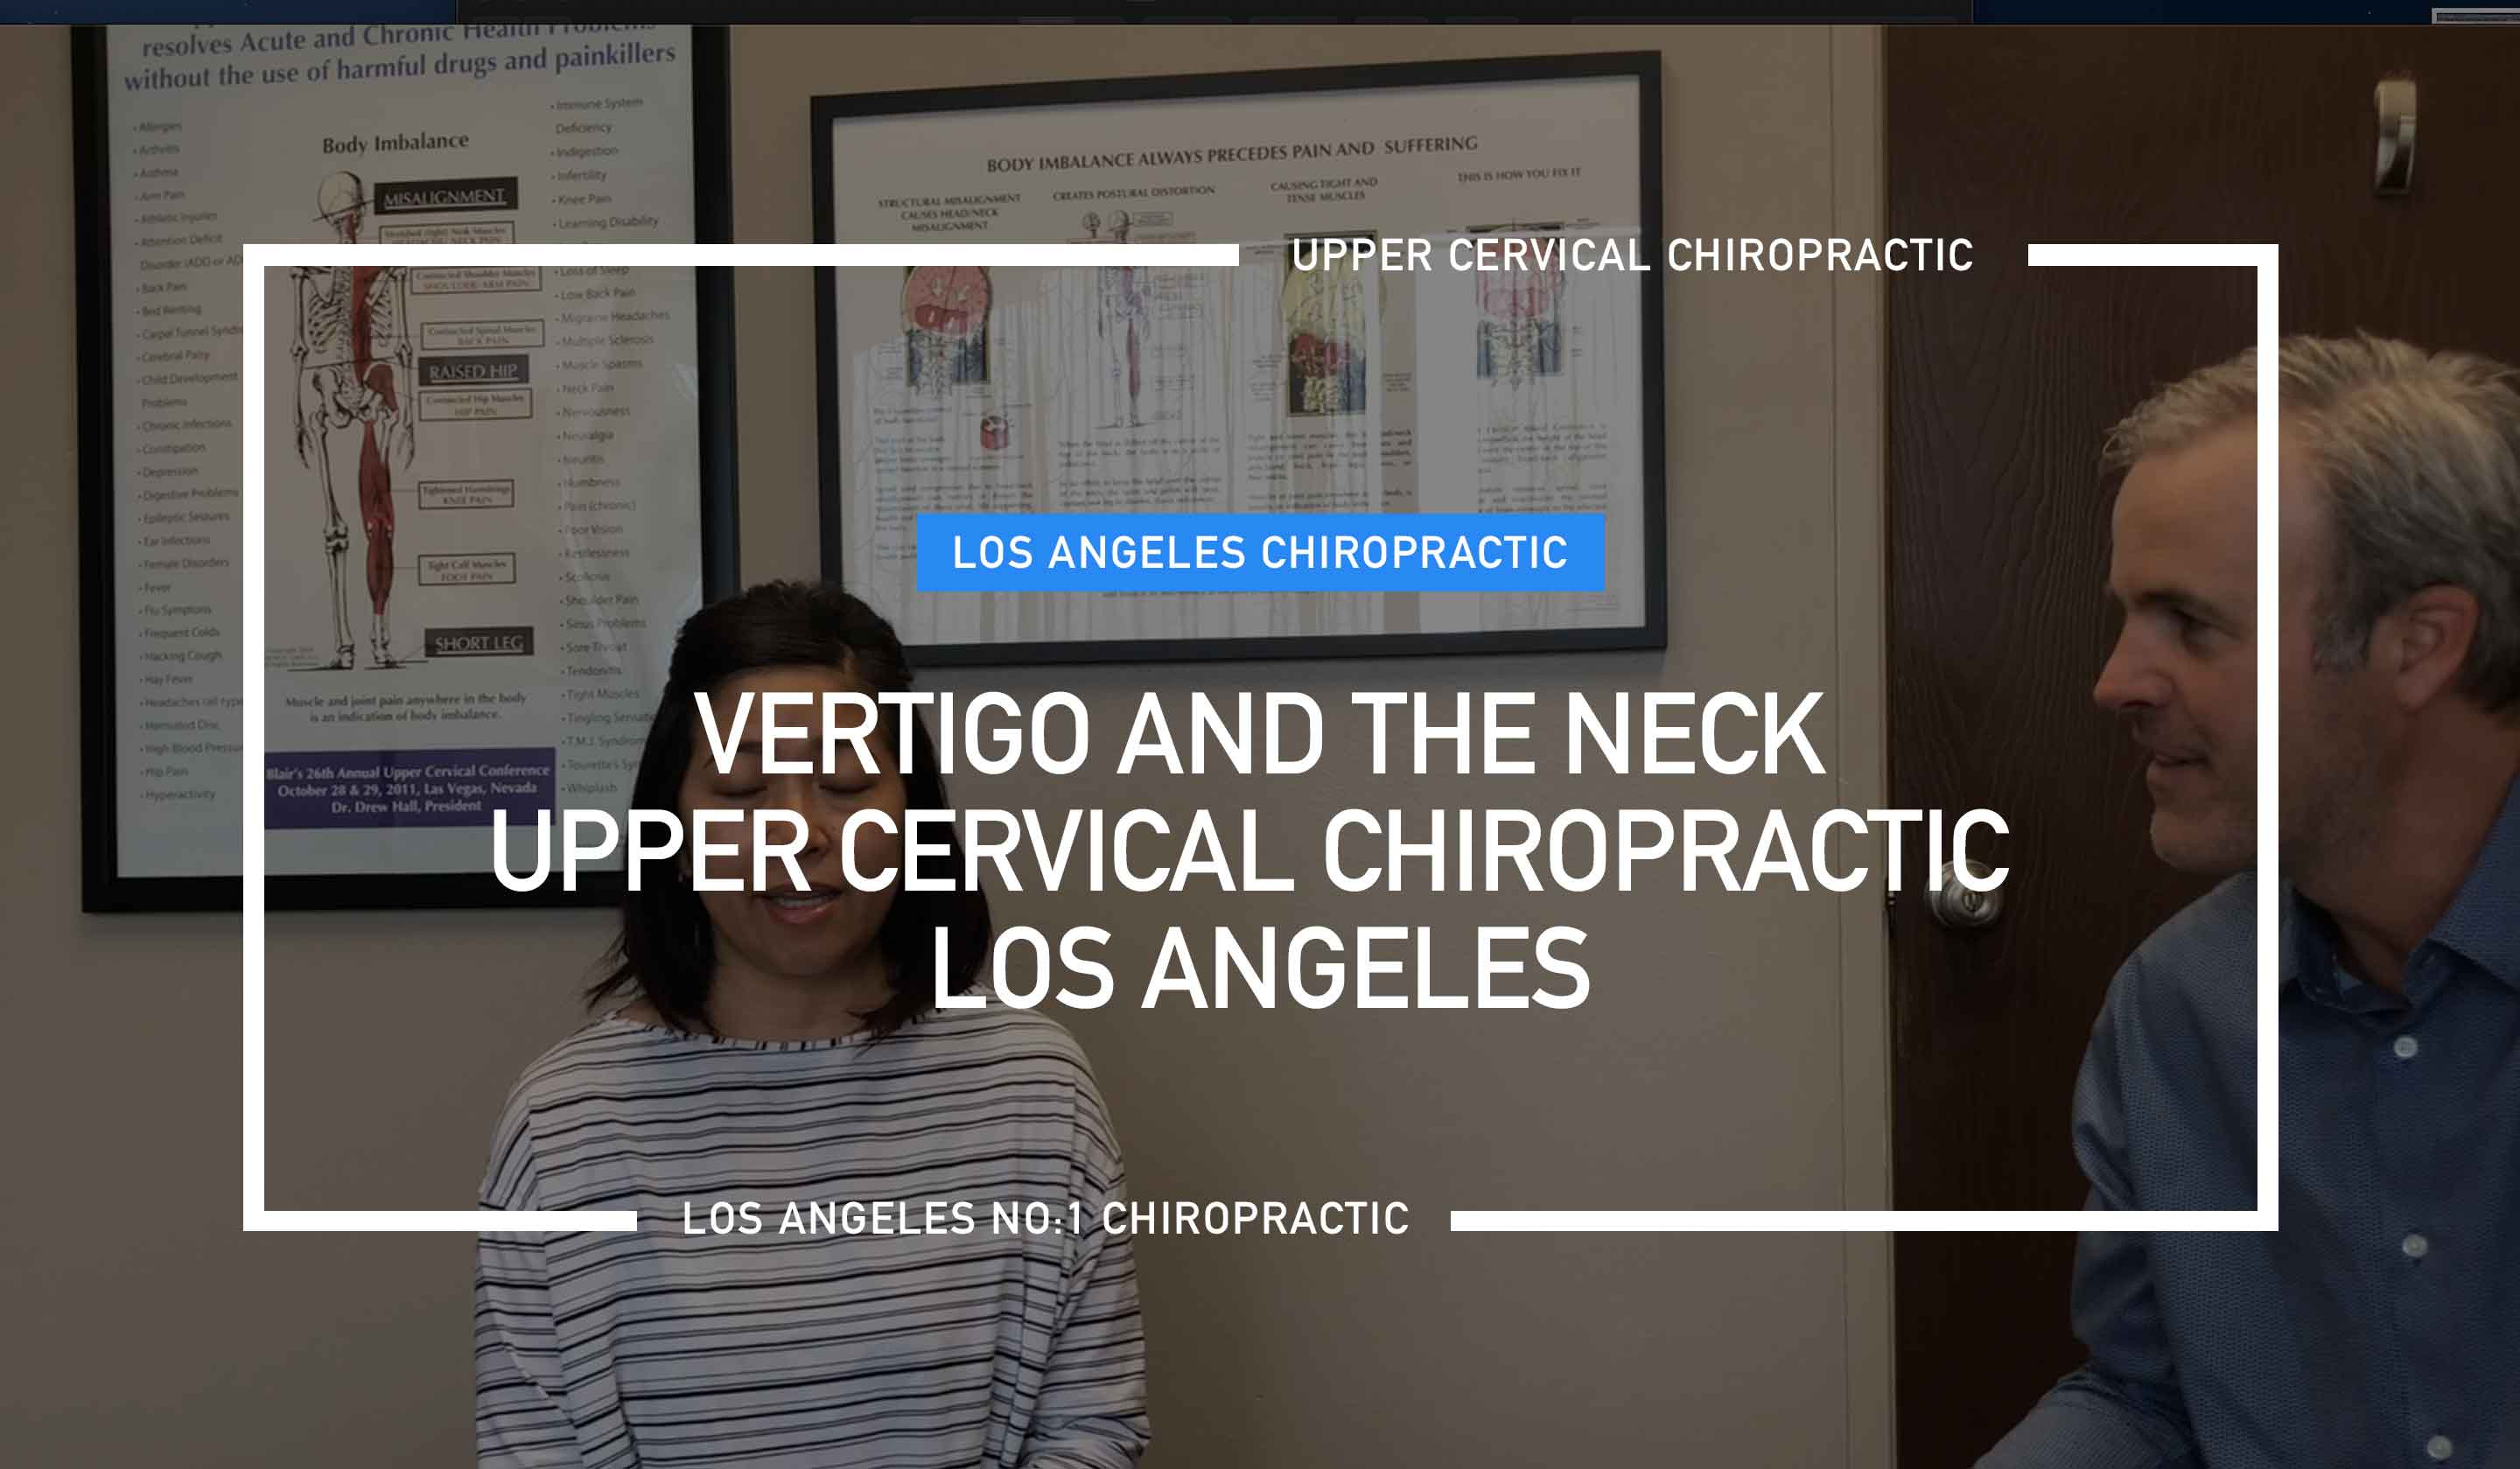 As we have written about on numerous occasions in our blogging efforts, vestibular conditions which include vertigo, BPPV, Ménière disease and  Mal de Debarquement affect over 400,000 patients in Los Angeles basin alone.